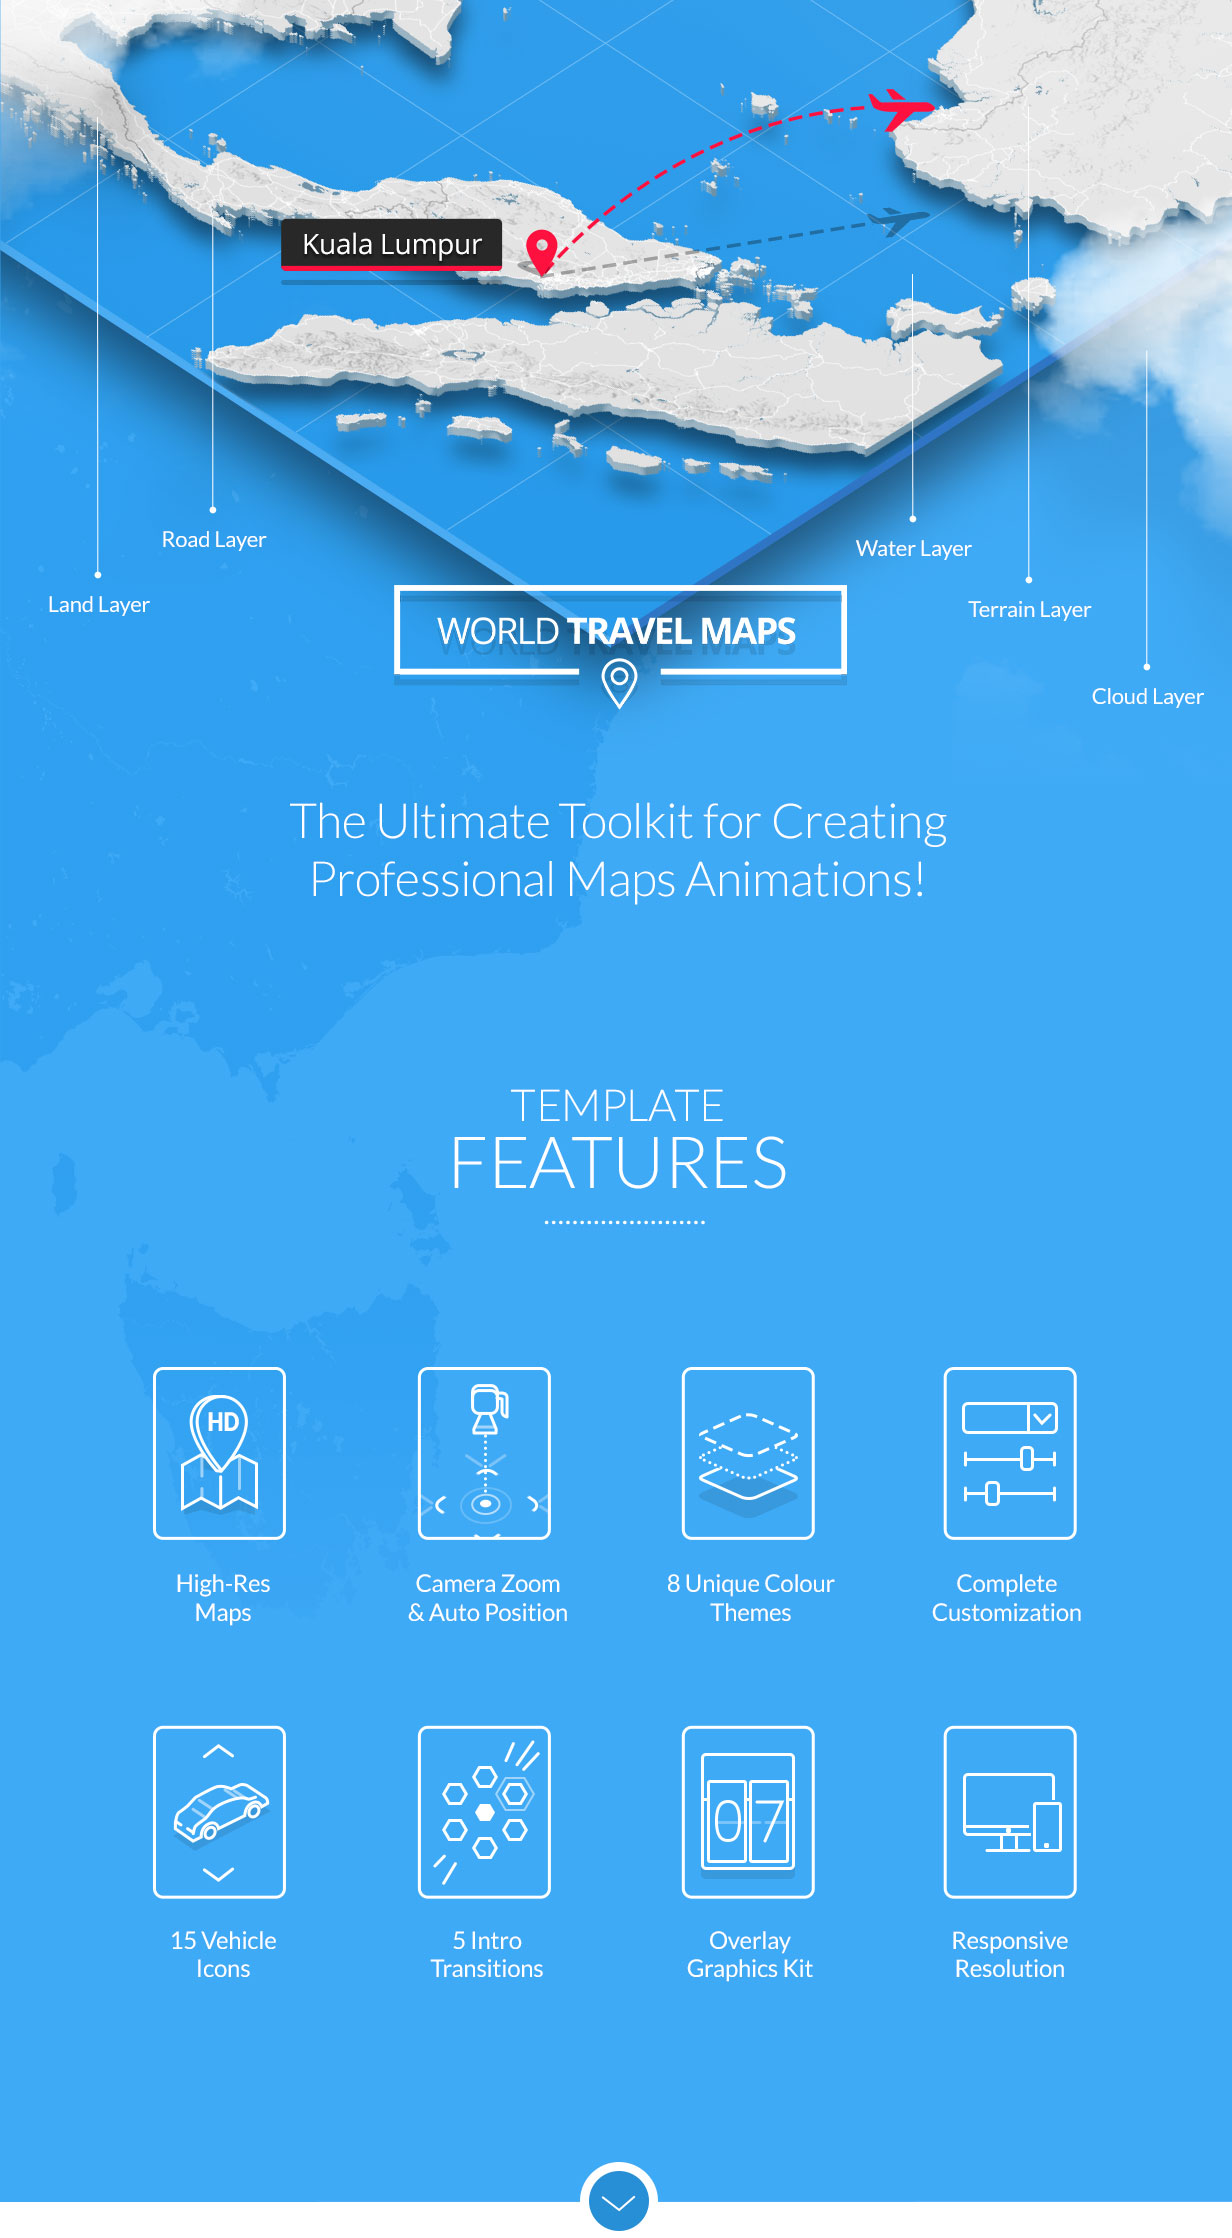 World Travel Maps - 1